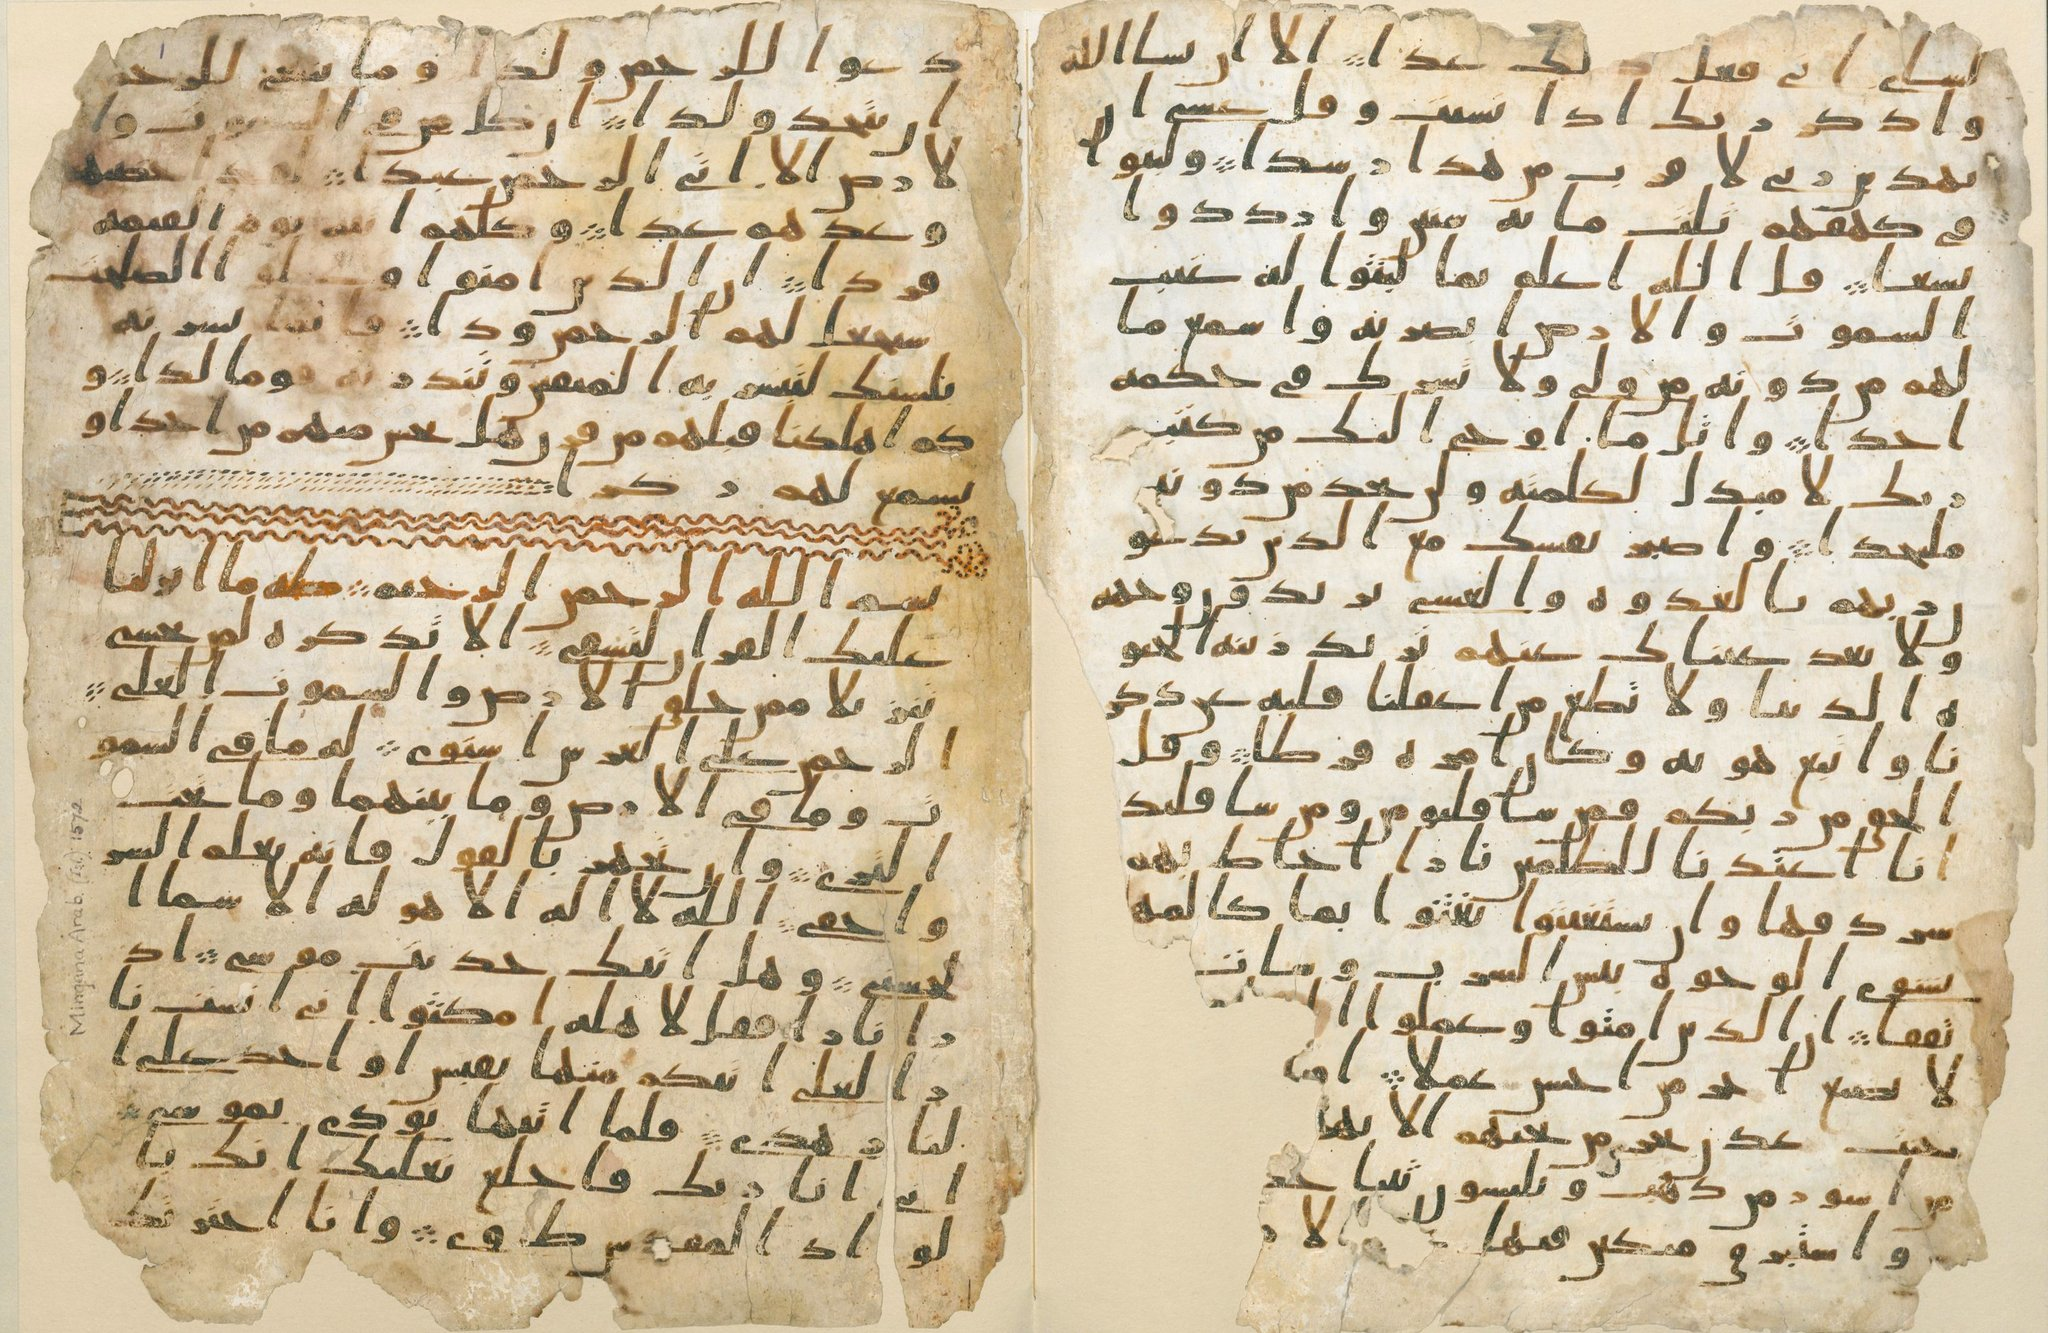 Birmingham Quran manuscript, dated among the oldest in the world